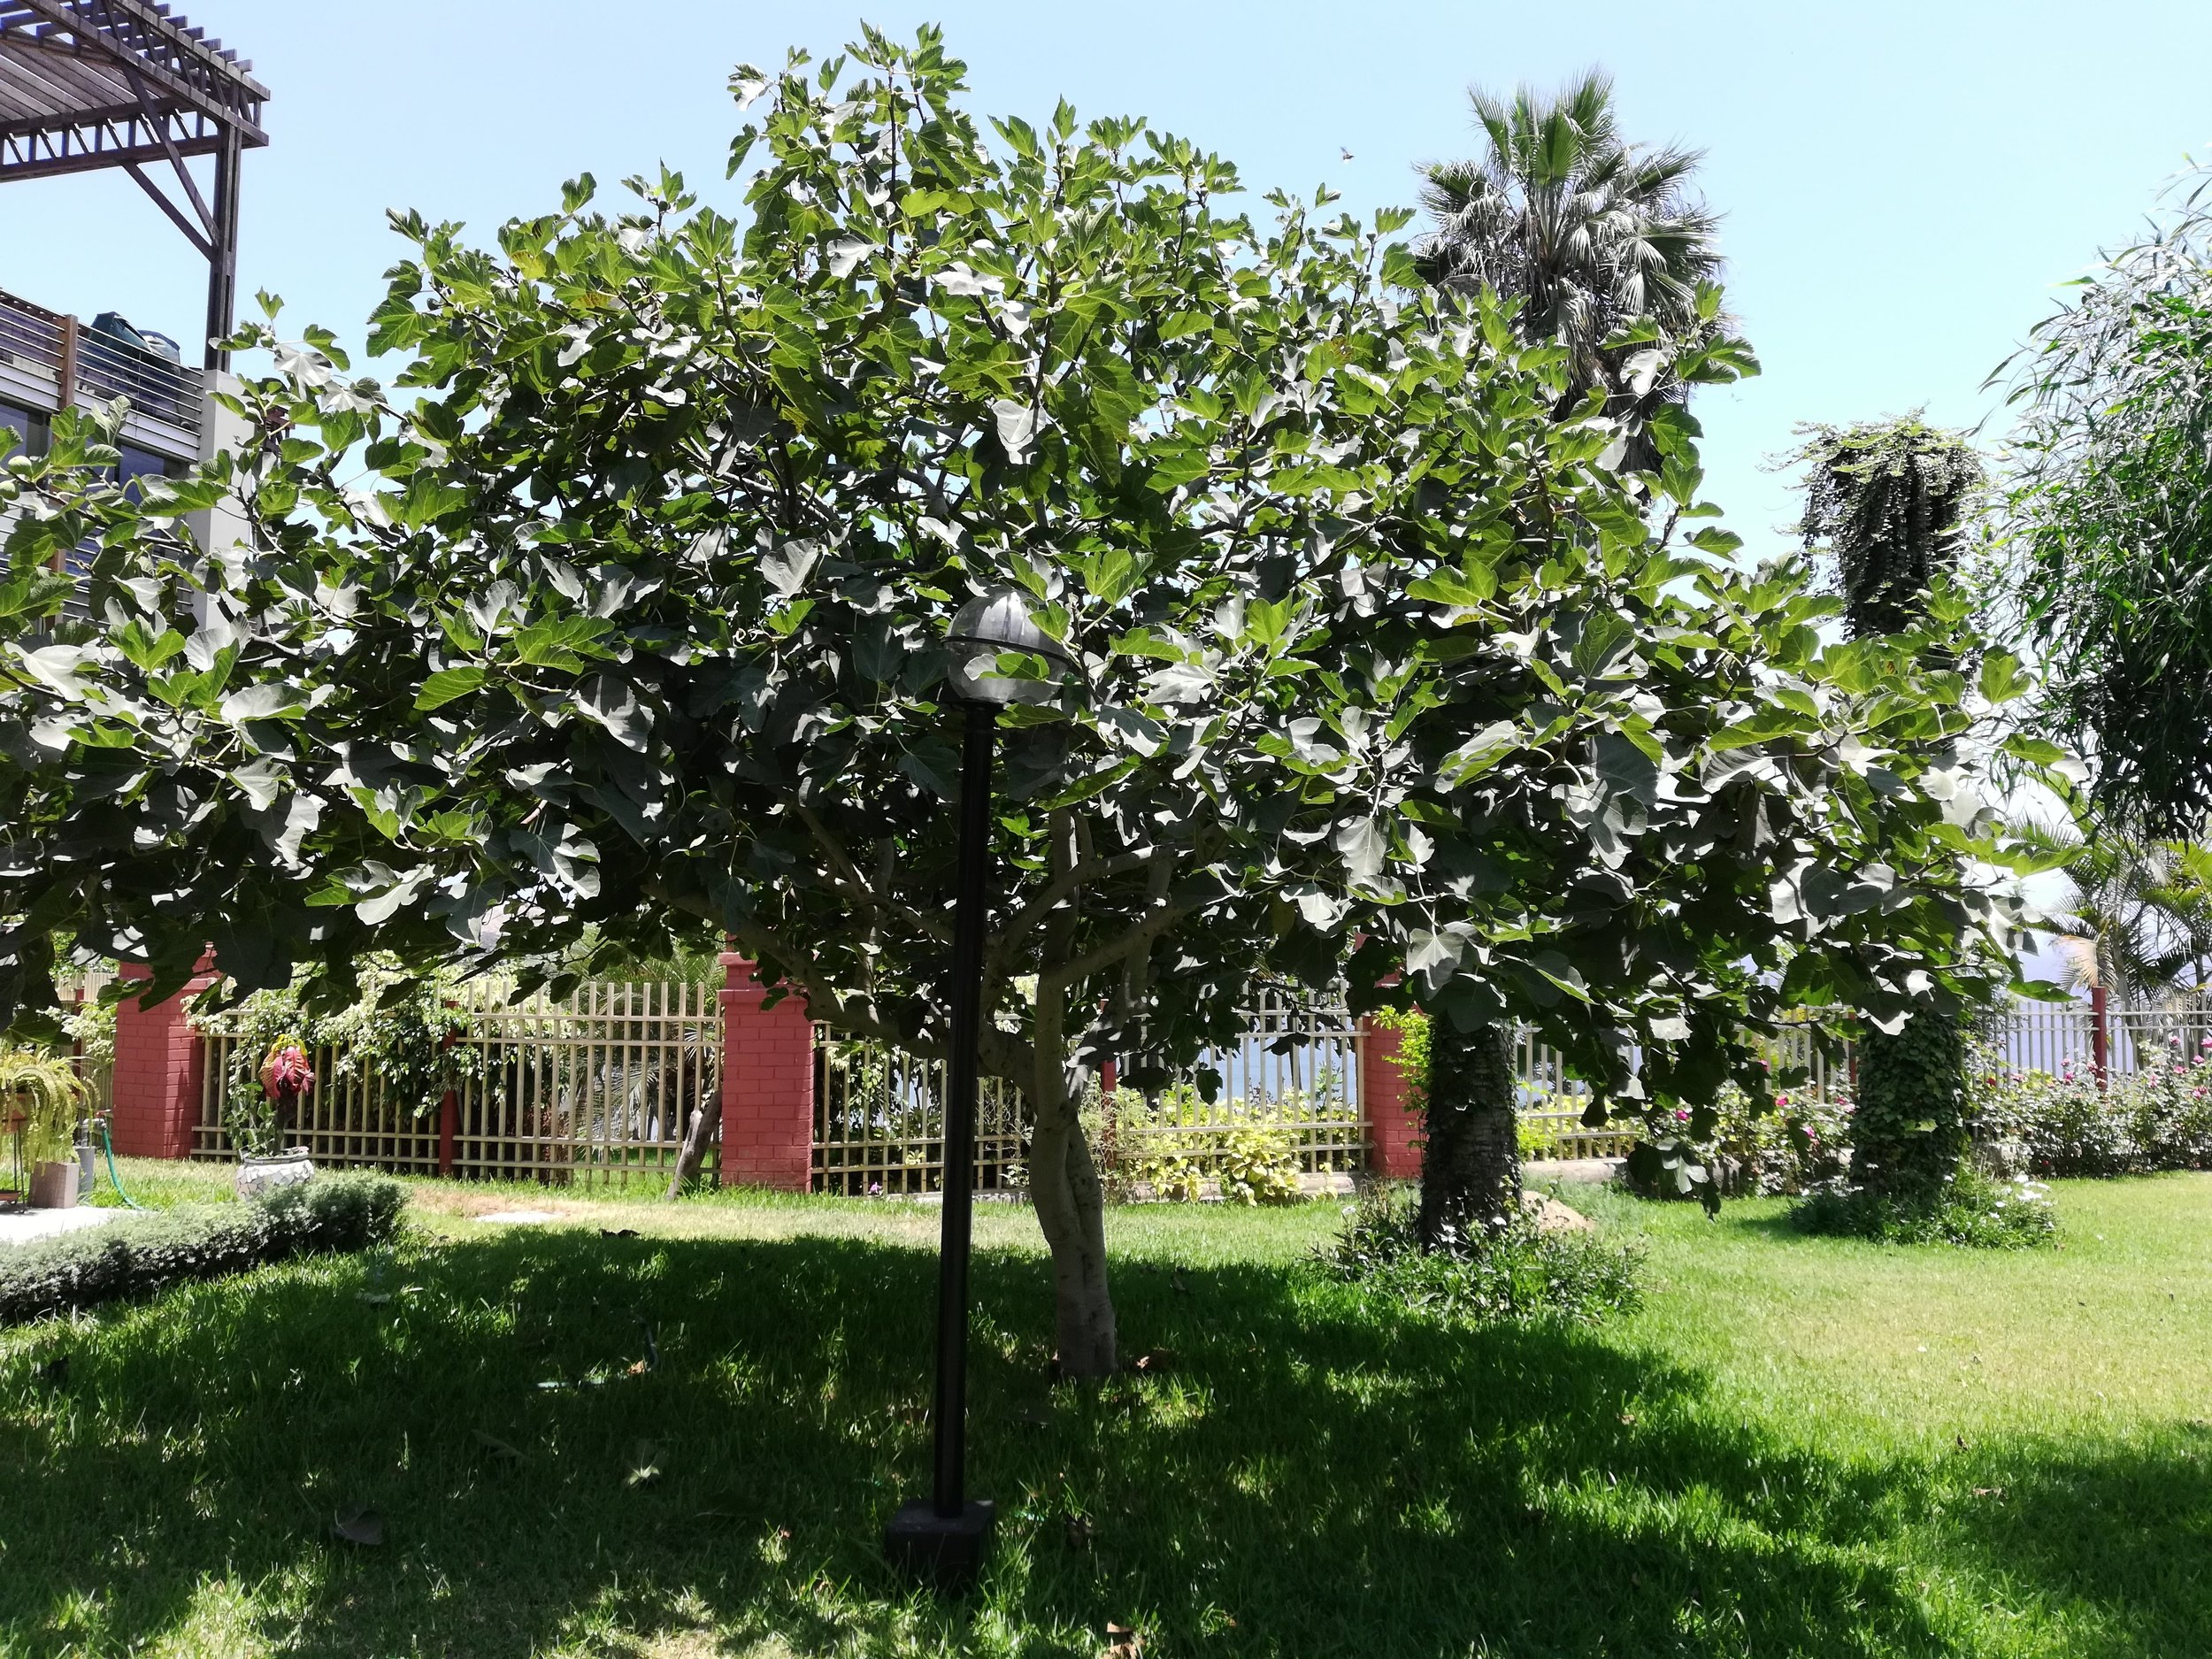 One of the fig trees